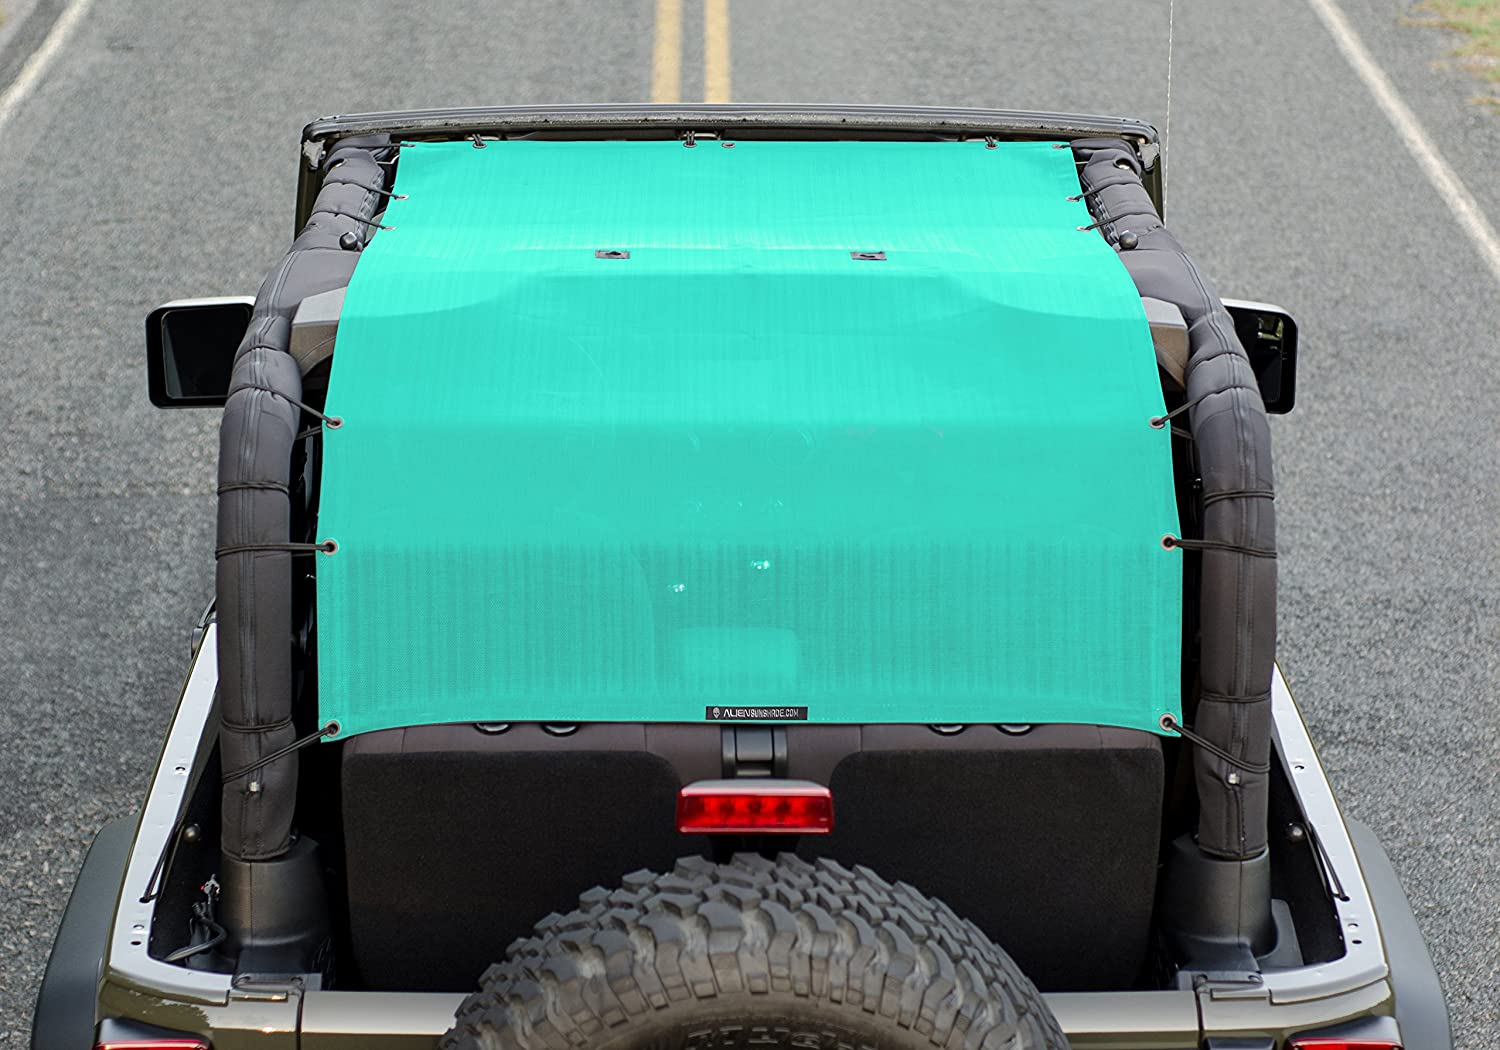 2007-2017 ALIEN SUNSHADE 2-Door Jeep Wrangler Mesh Shade Top Cover Extra Long with 10 Year Warranty Provides UV Protection for Your 2-Door JK